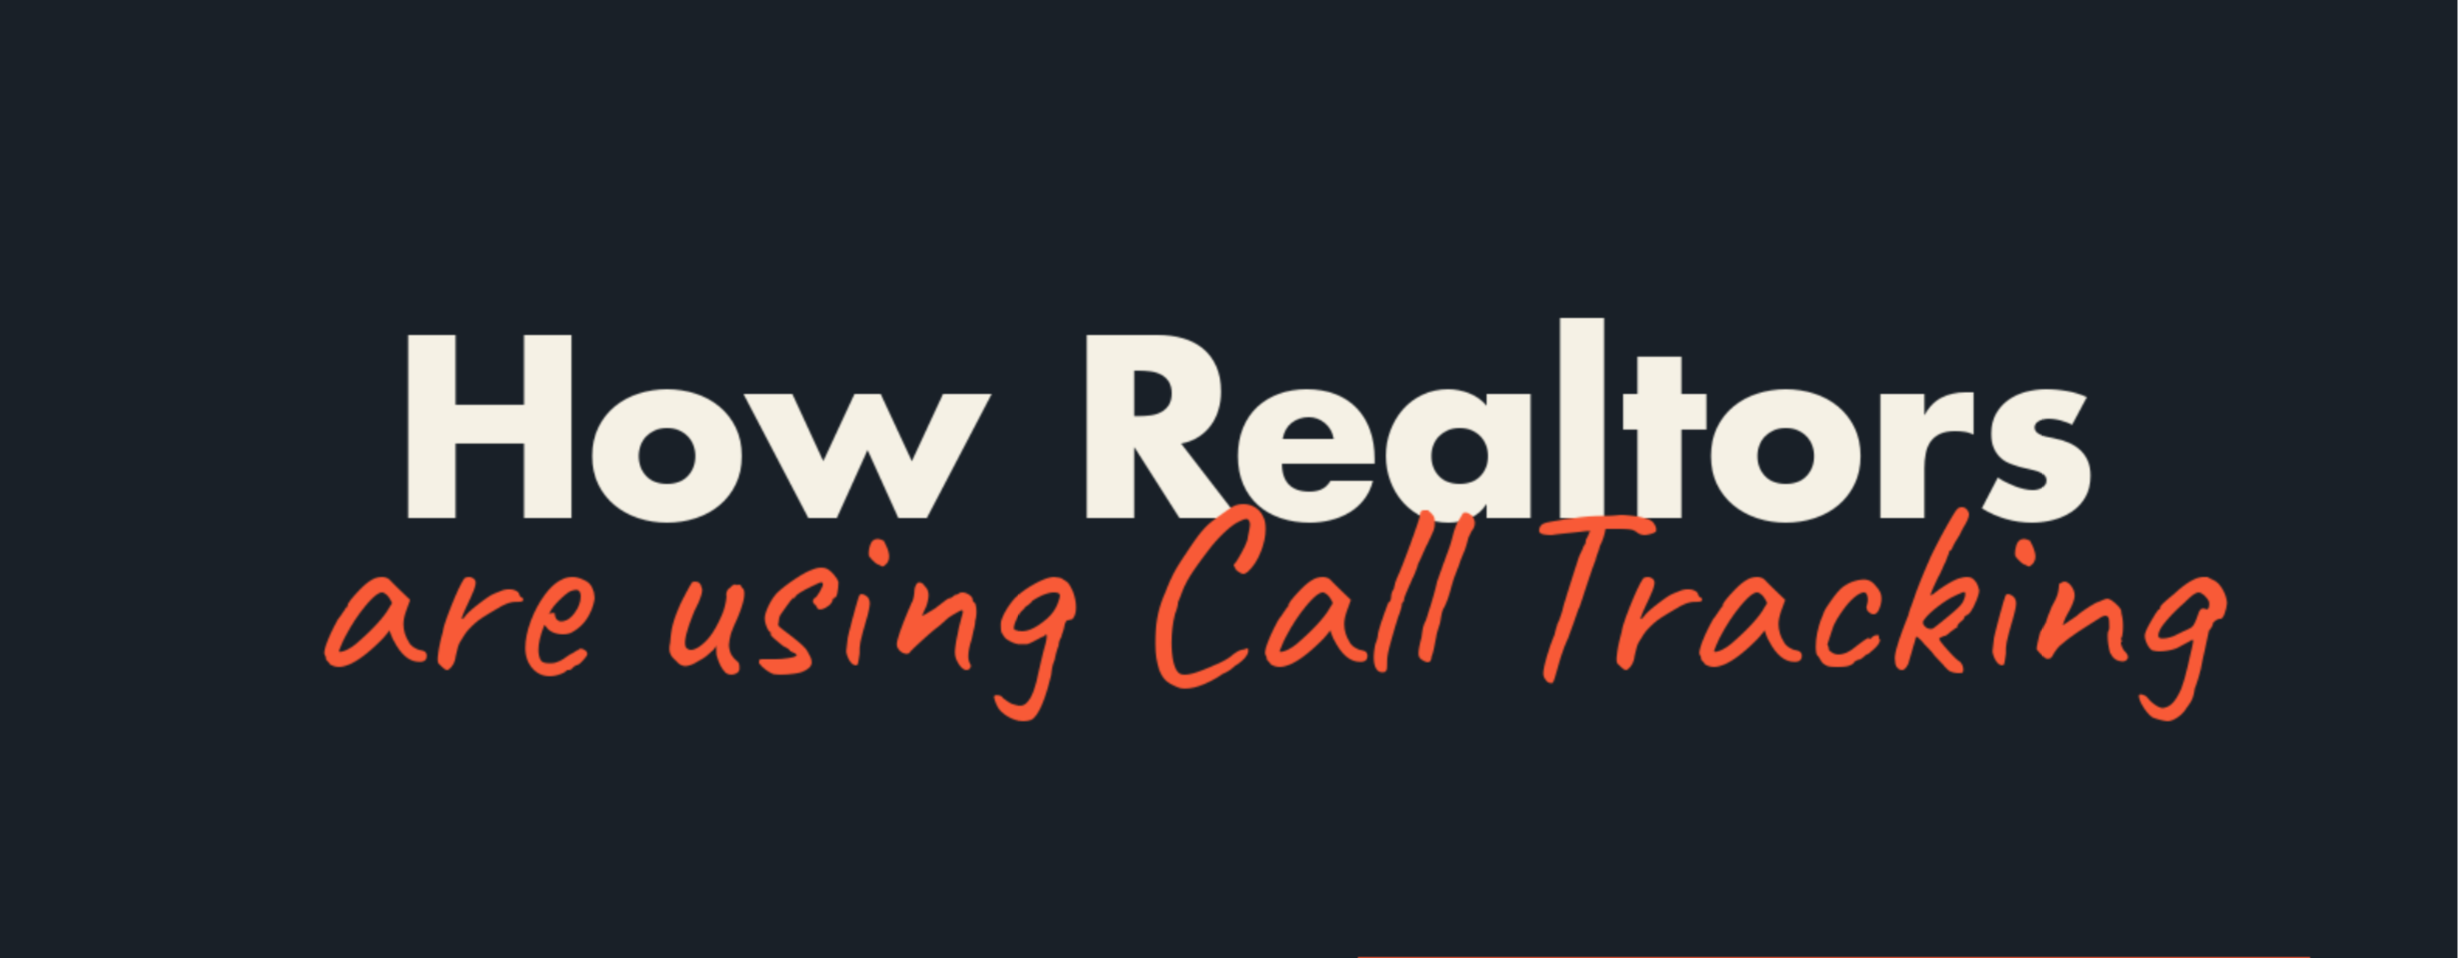 Call Tracking for Realtors